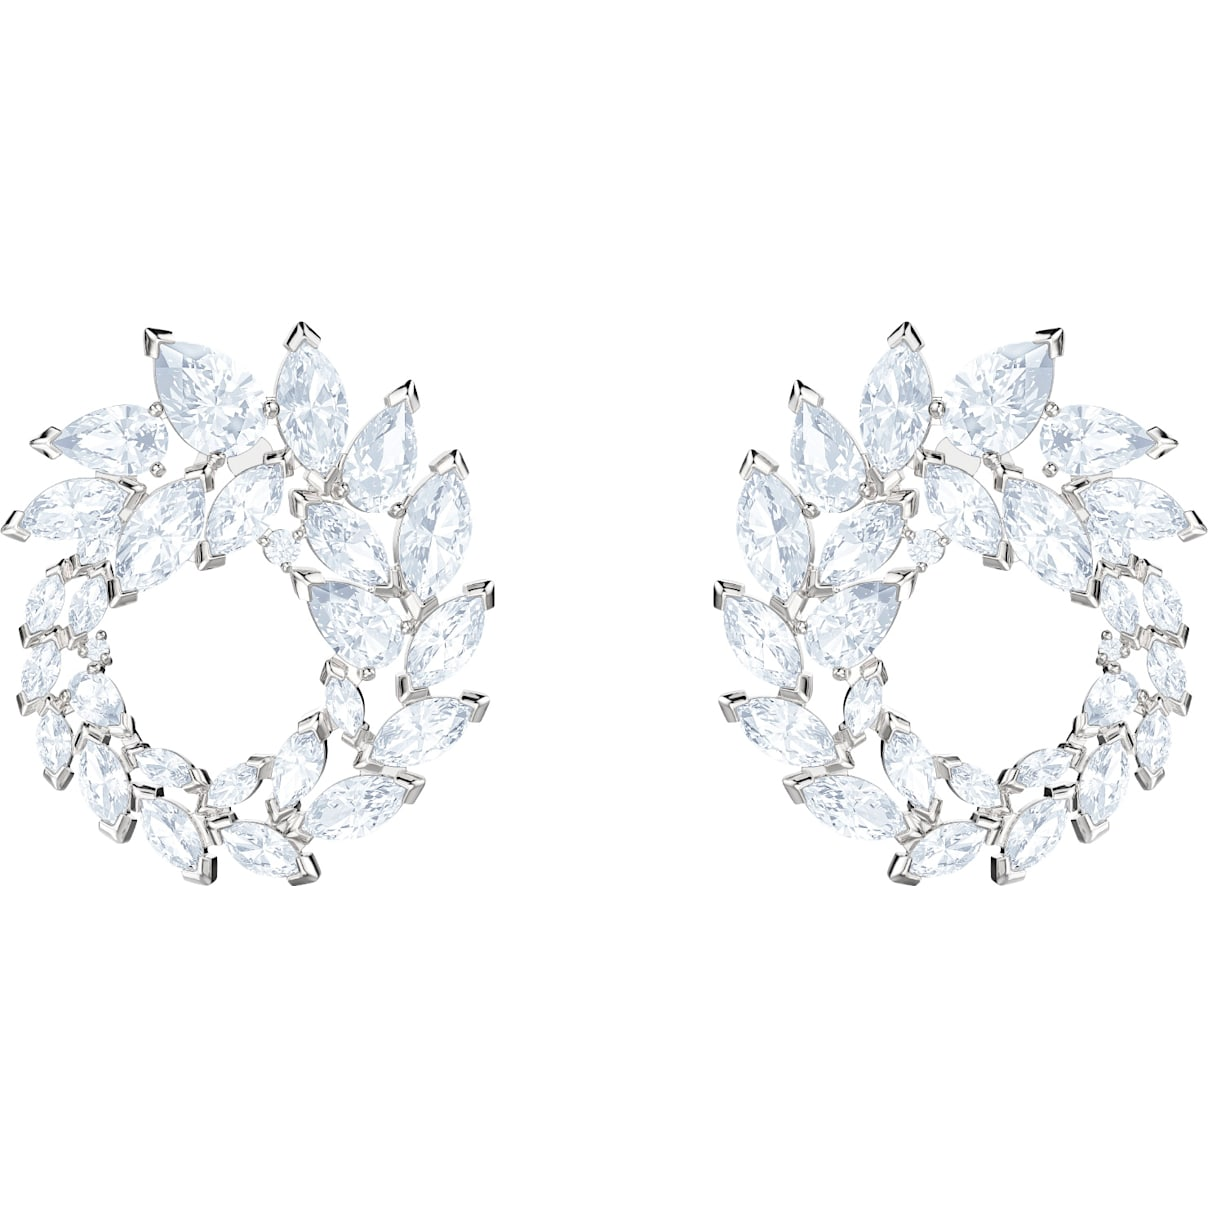 Swarovski Louison Earrings, White, Rhodium plated